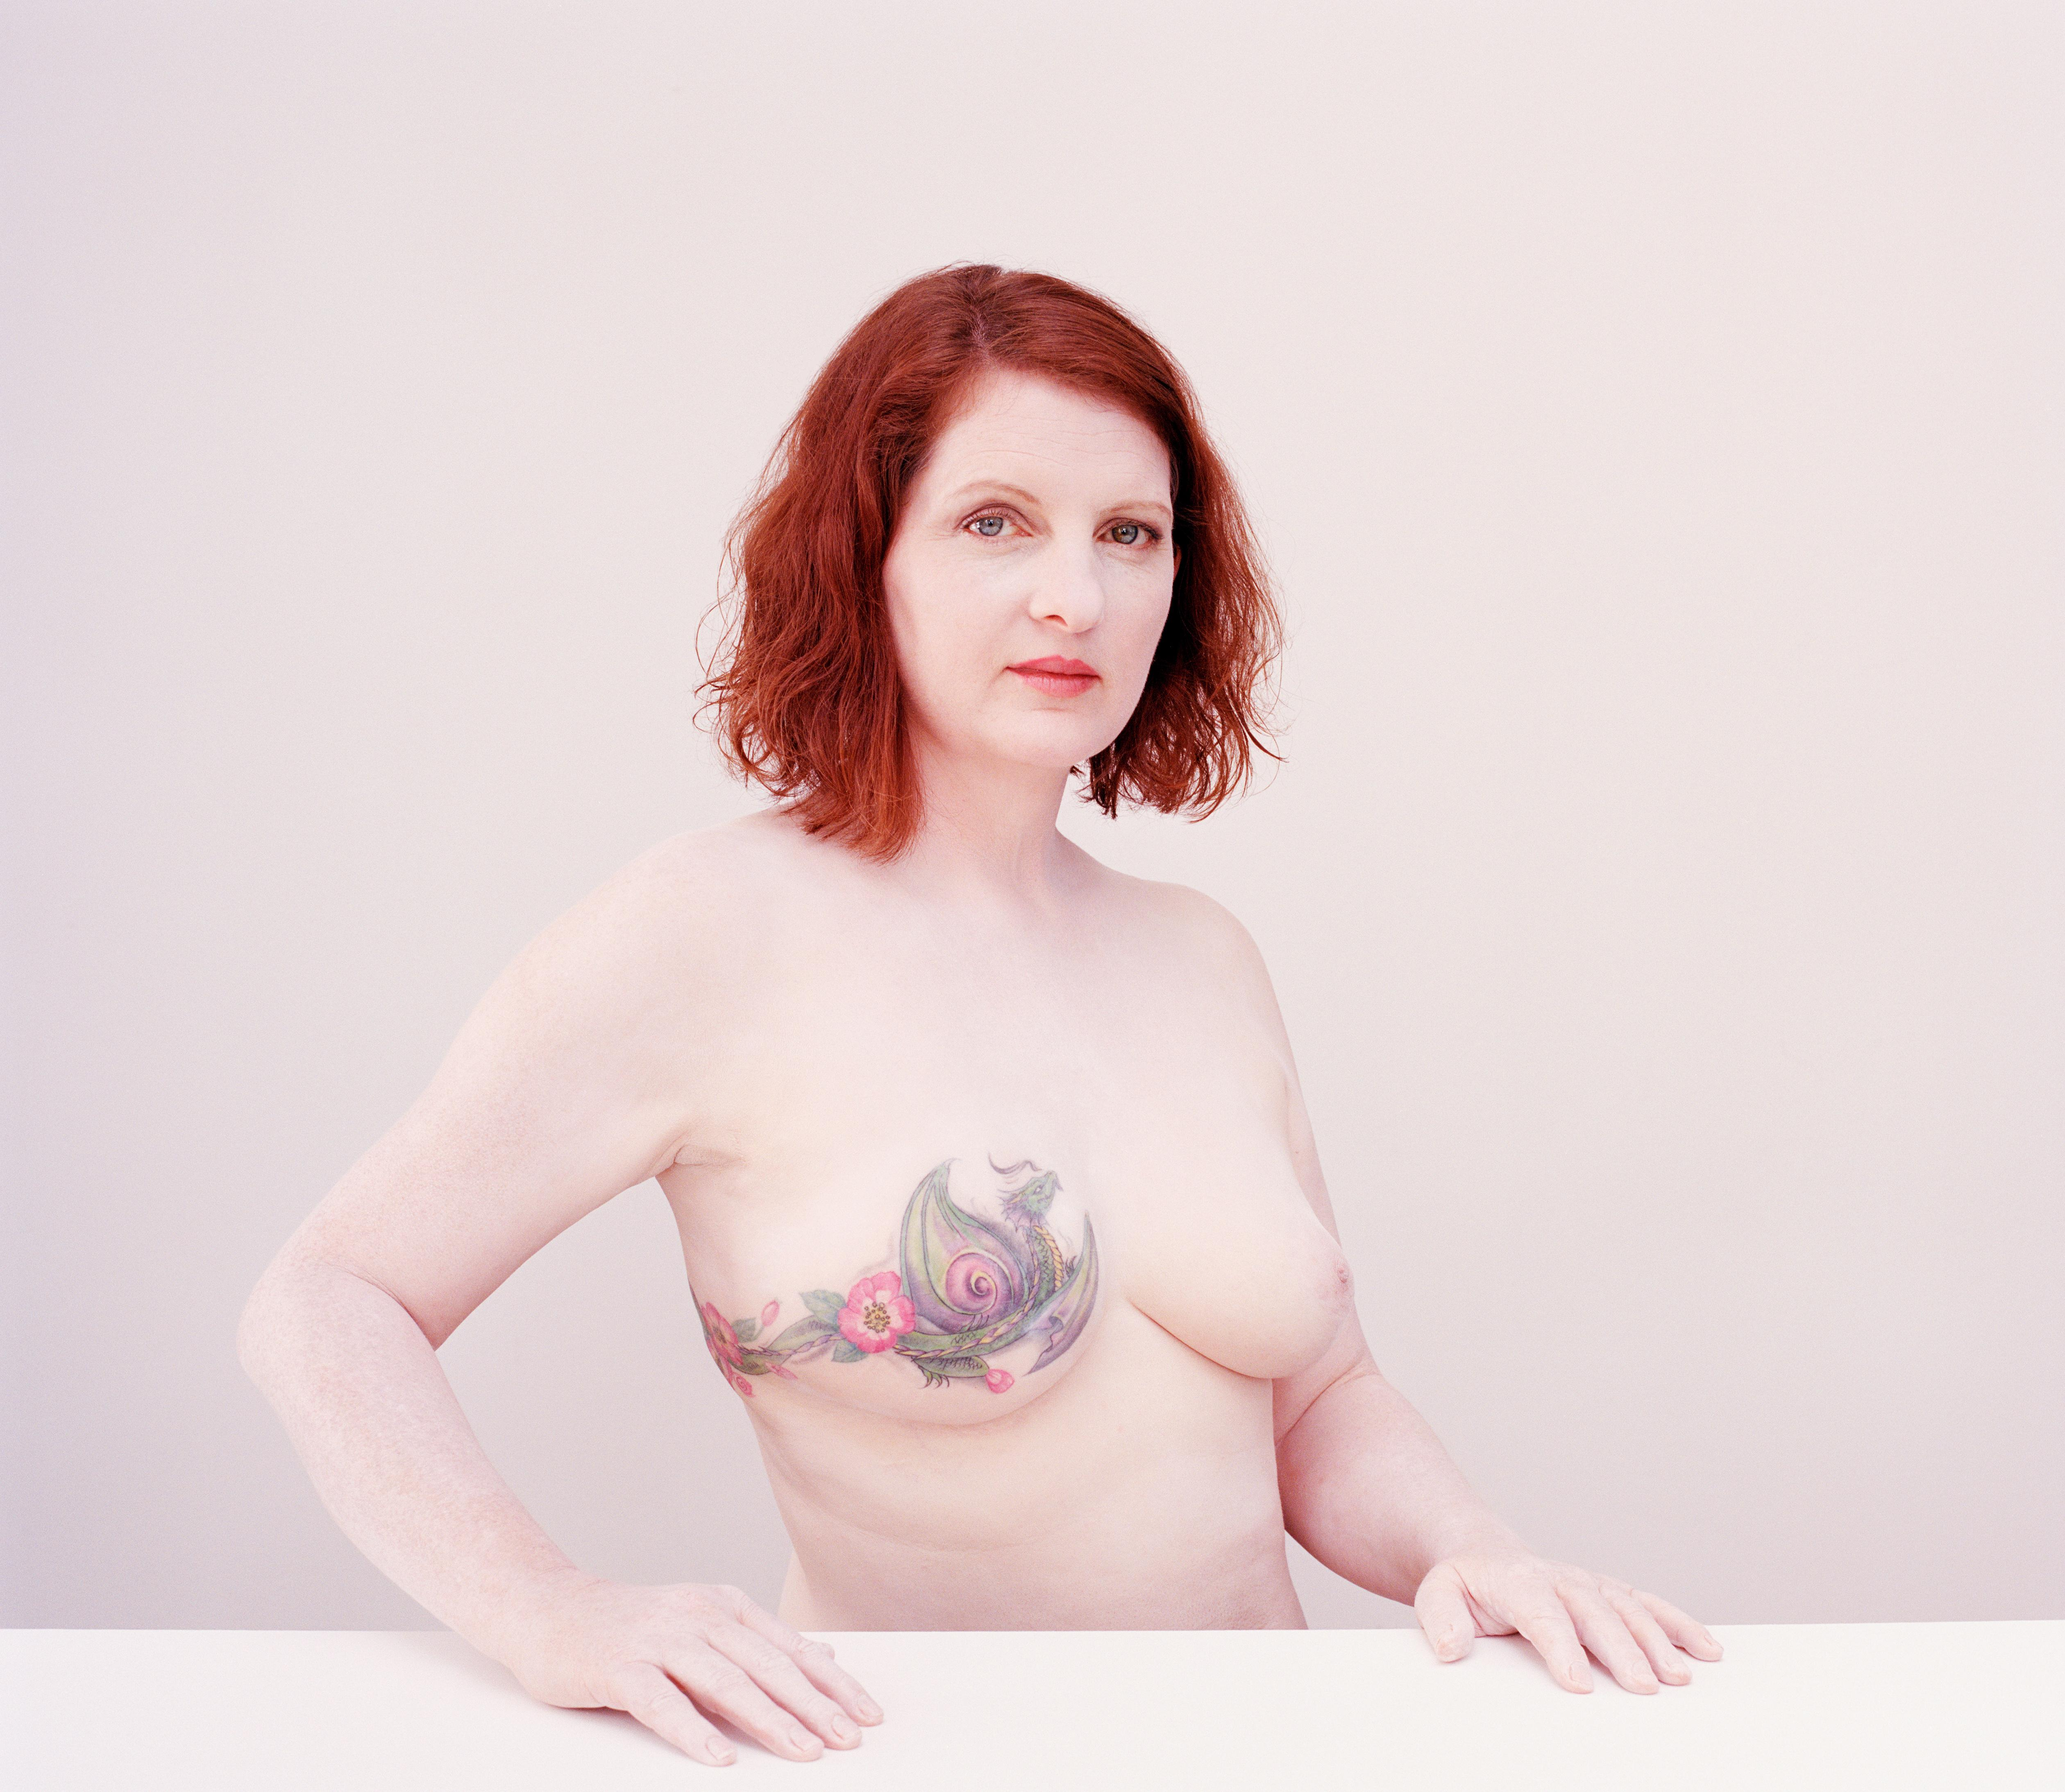 'Instead of a scar, I had a piece of art': women on their post-mastectomy tattoos